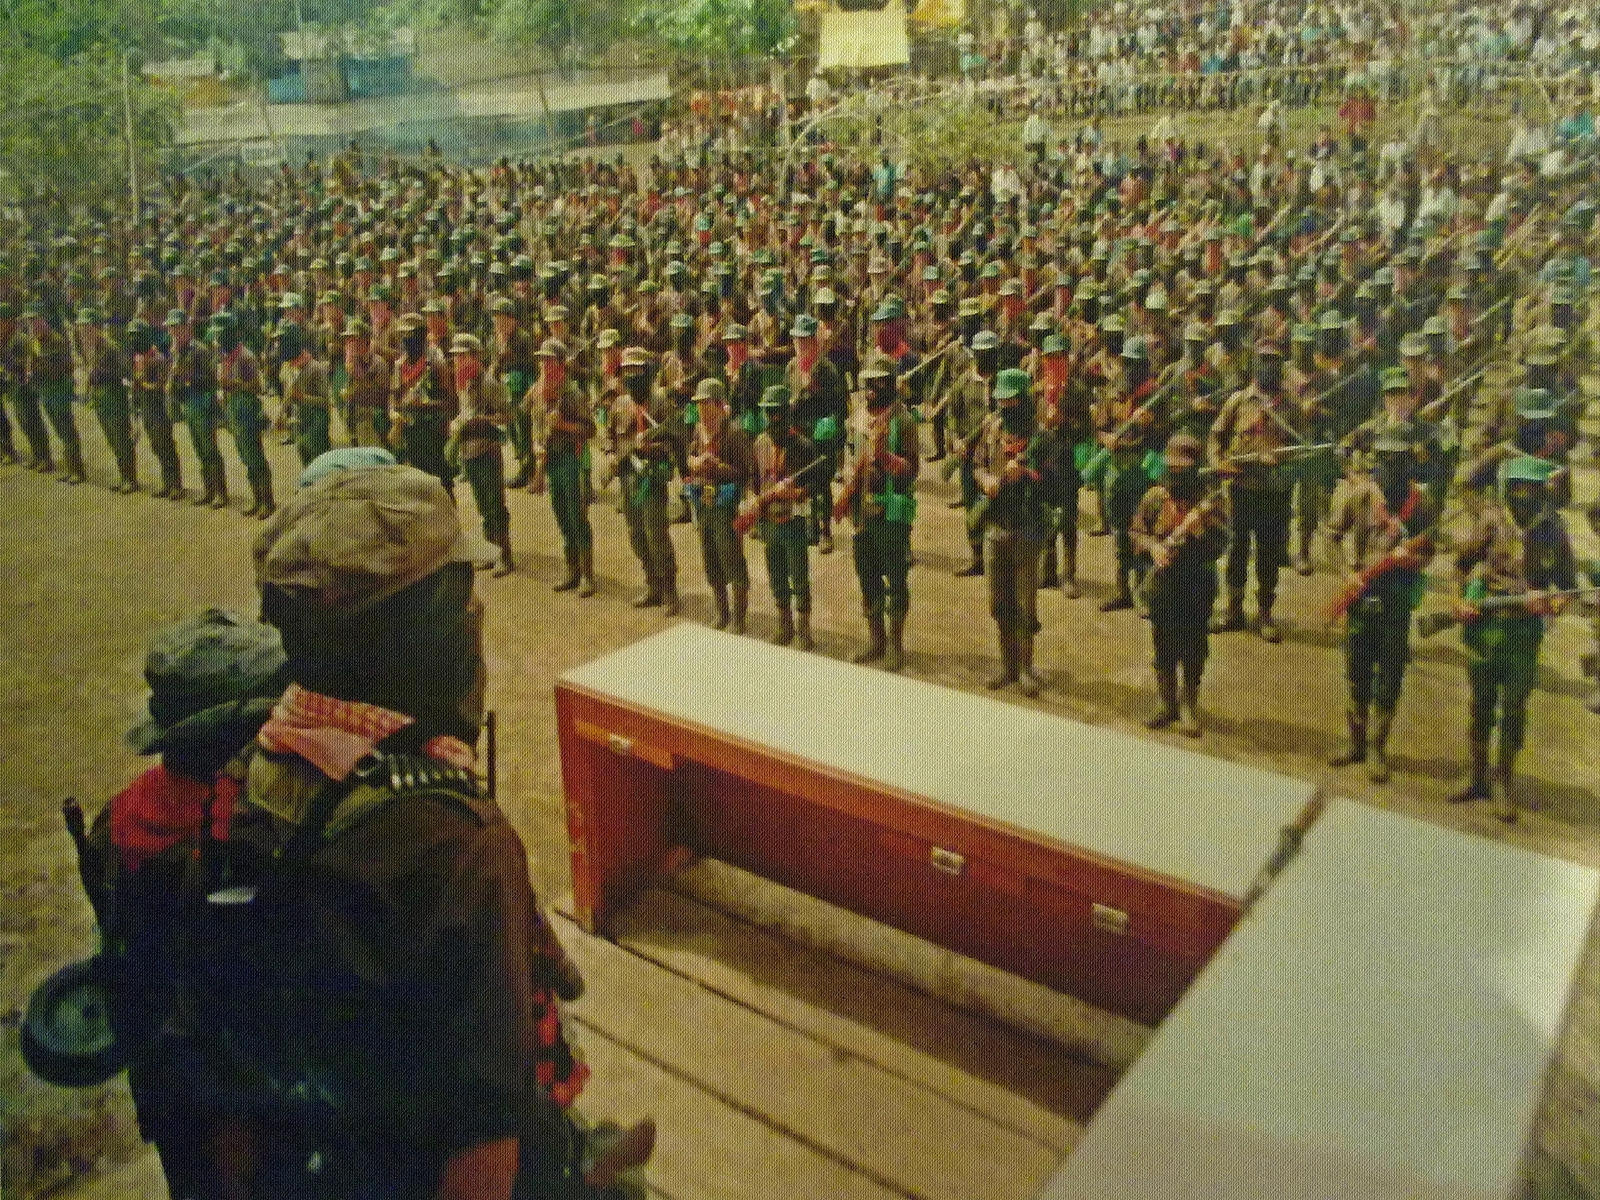 the ezln The ezln then withdrew to the jungle, and a tense ceasefire began on january 12th since then the mexican army has been using a tactic of low intensity warfare (killing and displacing civilians), which continues to this day.